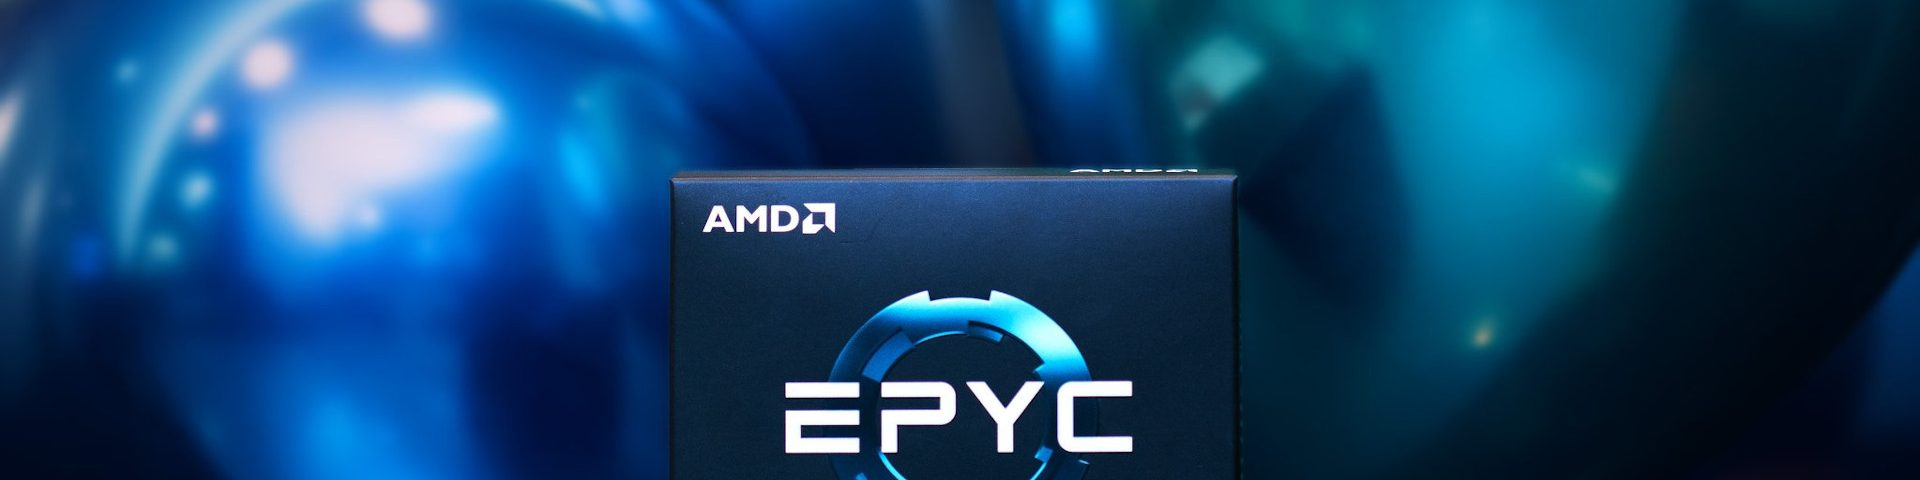 AMD CPUs better then Intel for security